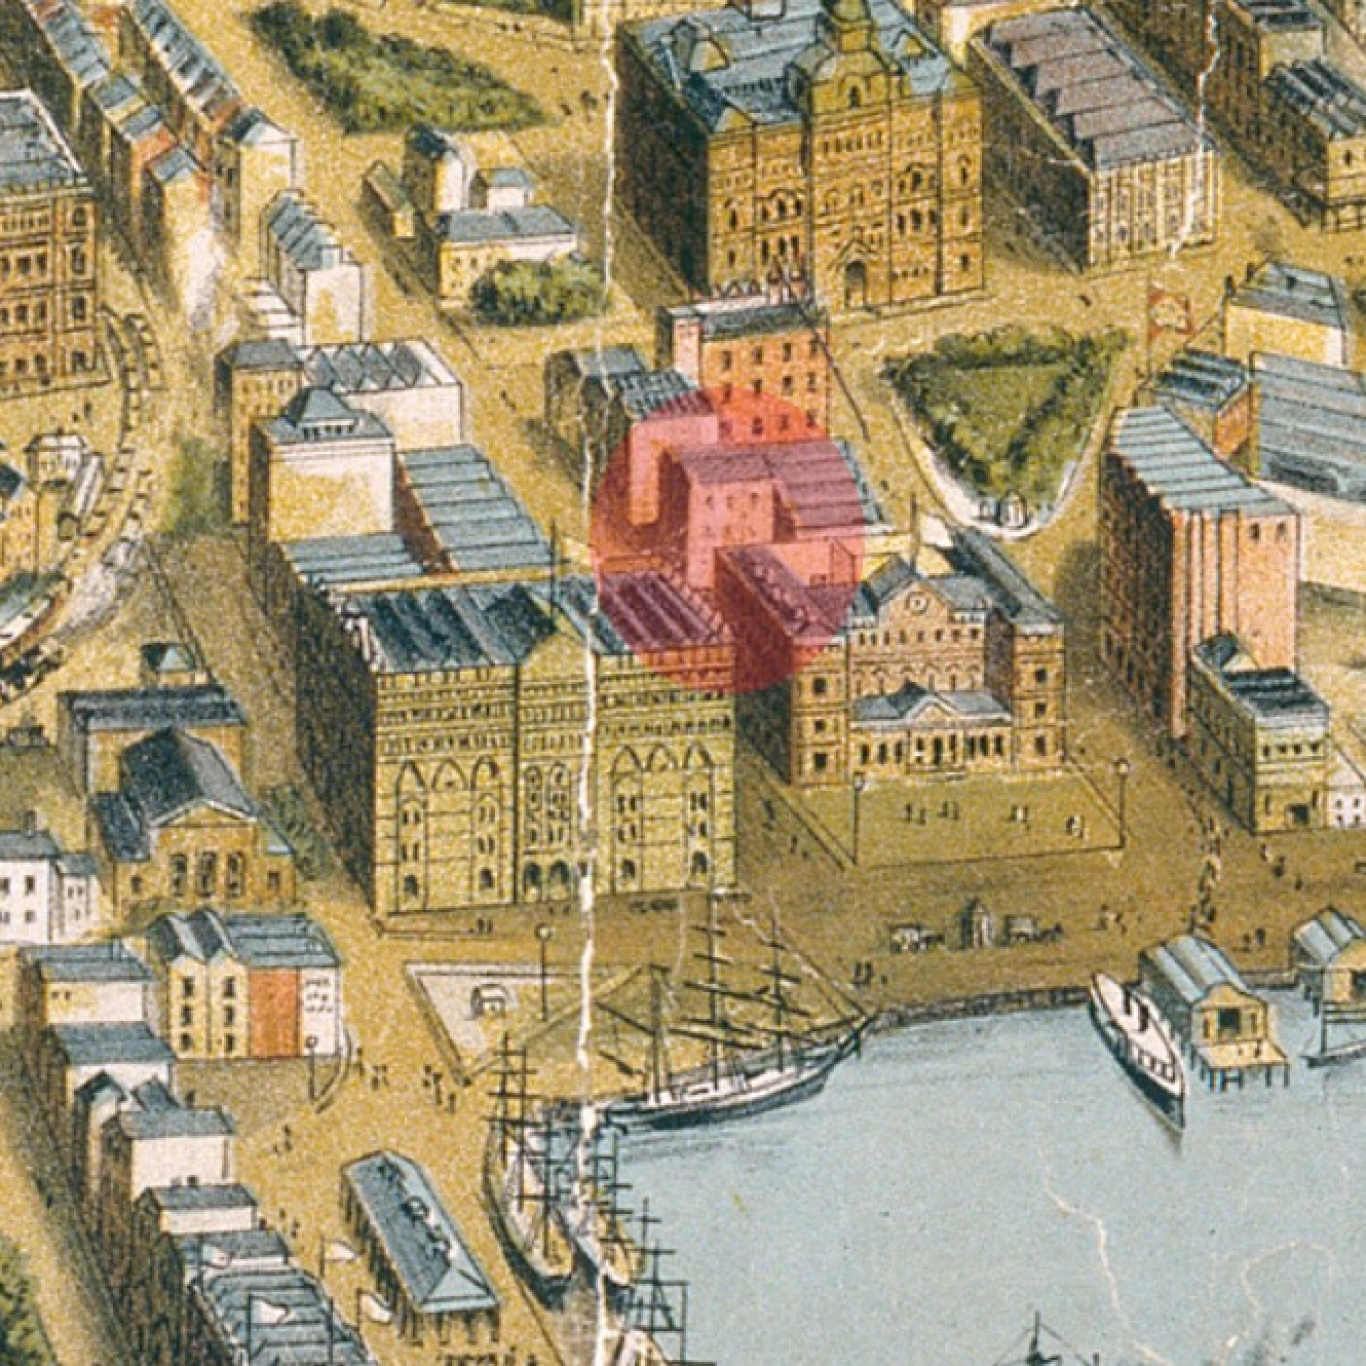 Colourful map with red shaded area to indicate location of building.